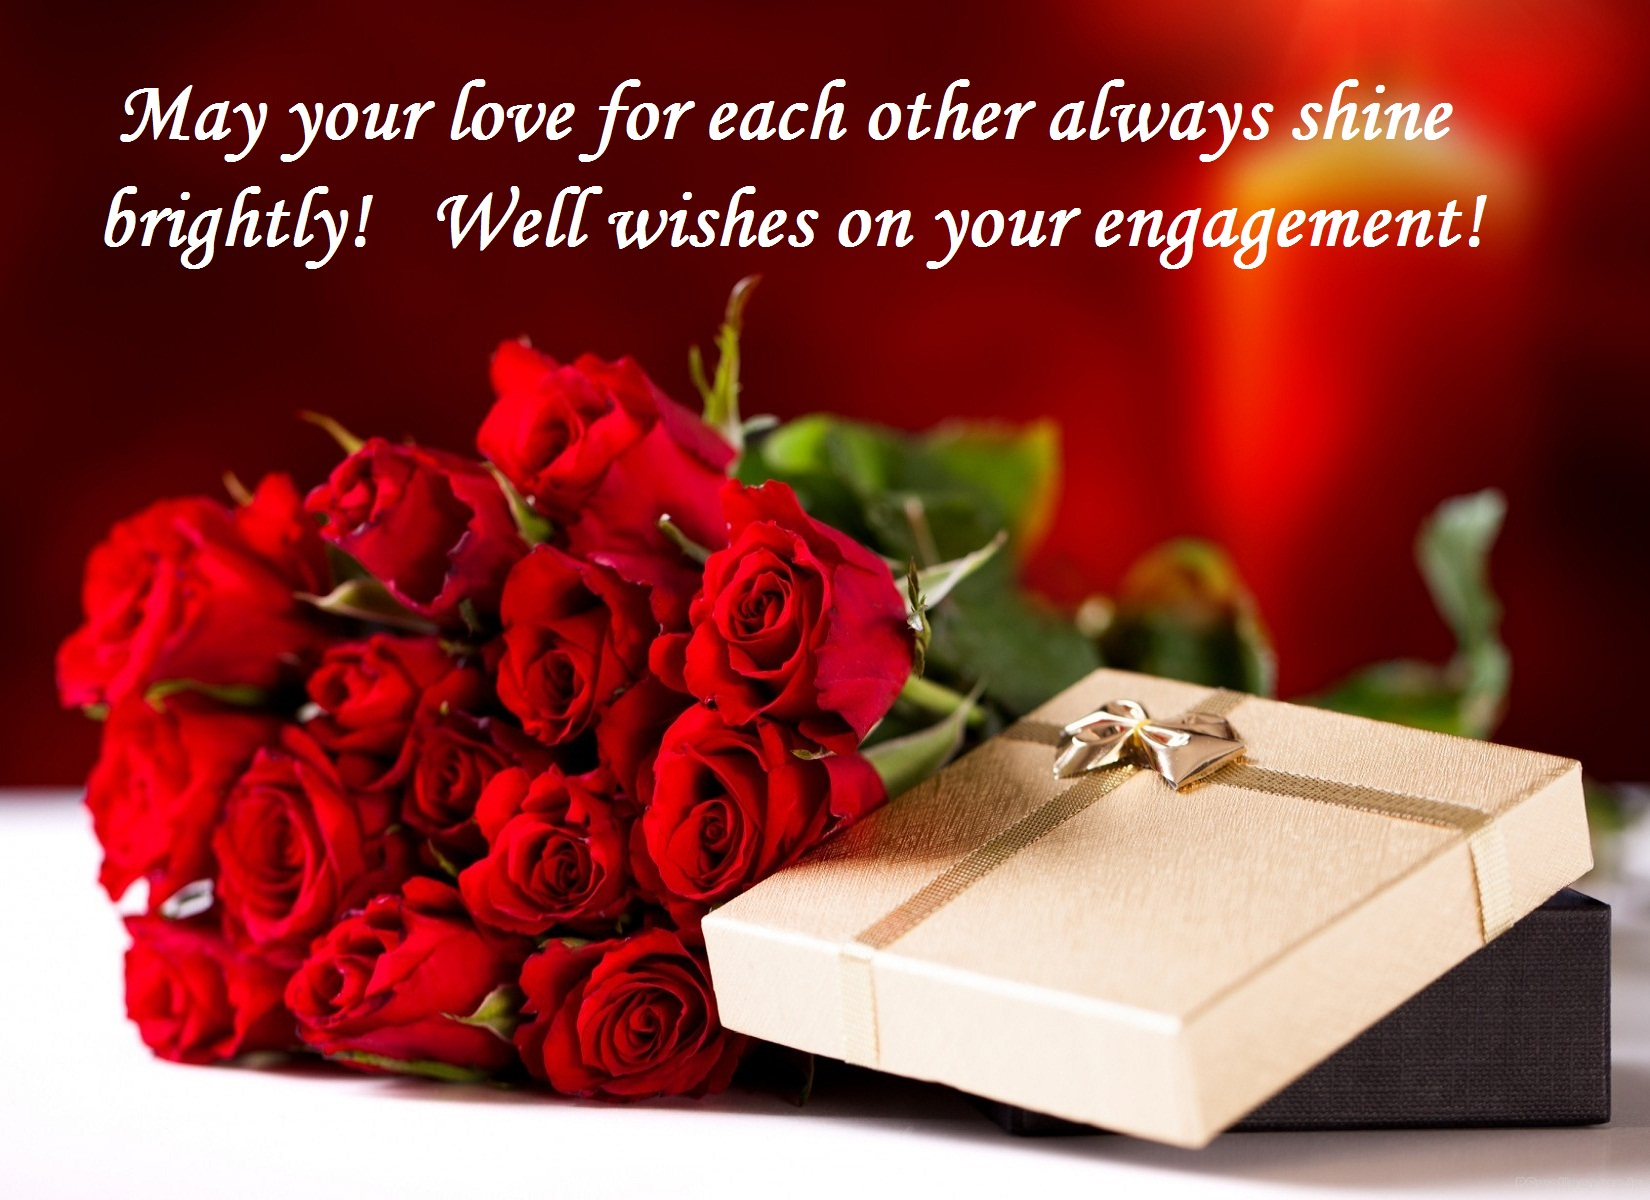 Lovely engagement wishes 2017 hd images free download m4hsunfo